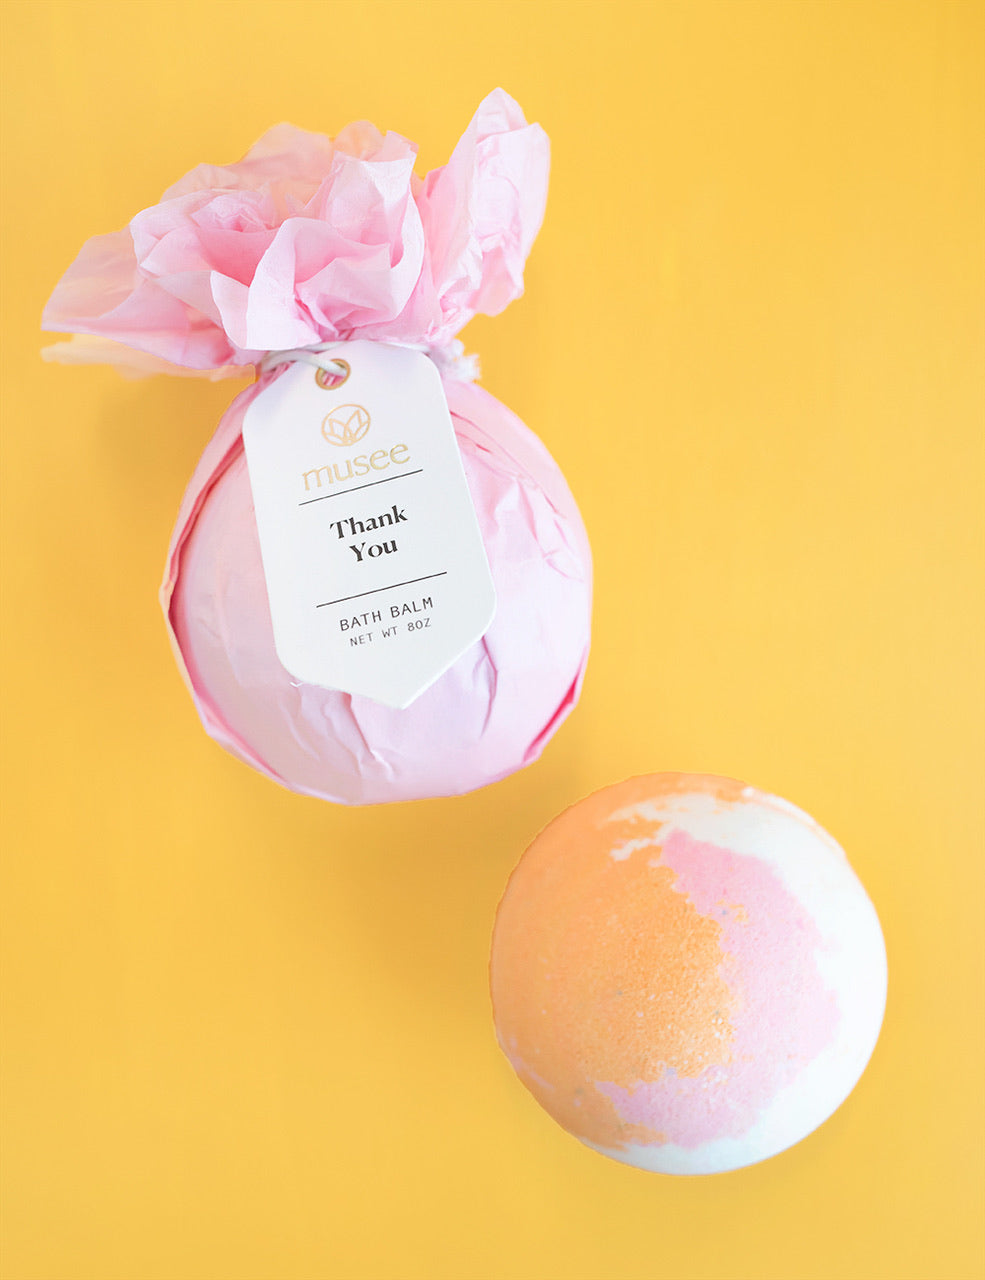 Musee Bath Bomb - Thank You - Monogram Gifts